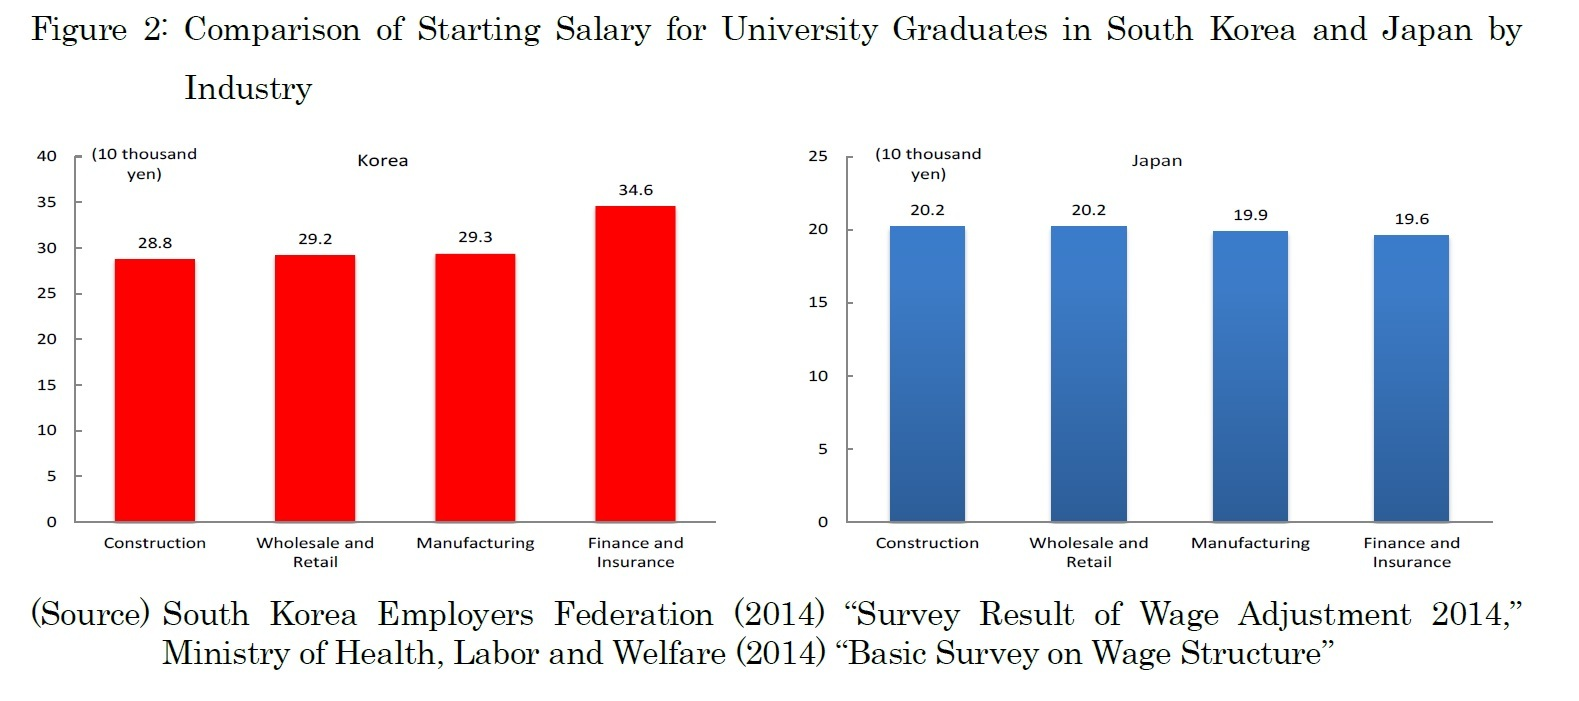 Figure 2: Comparison of Starting Salary for University Graduates in South Korea and Japan by Industry